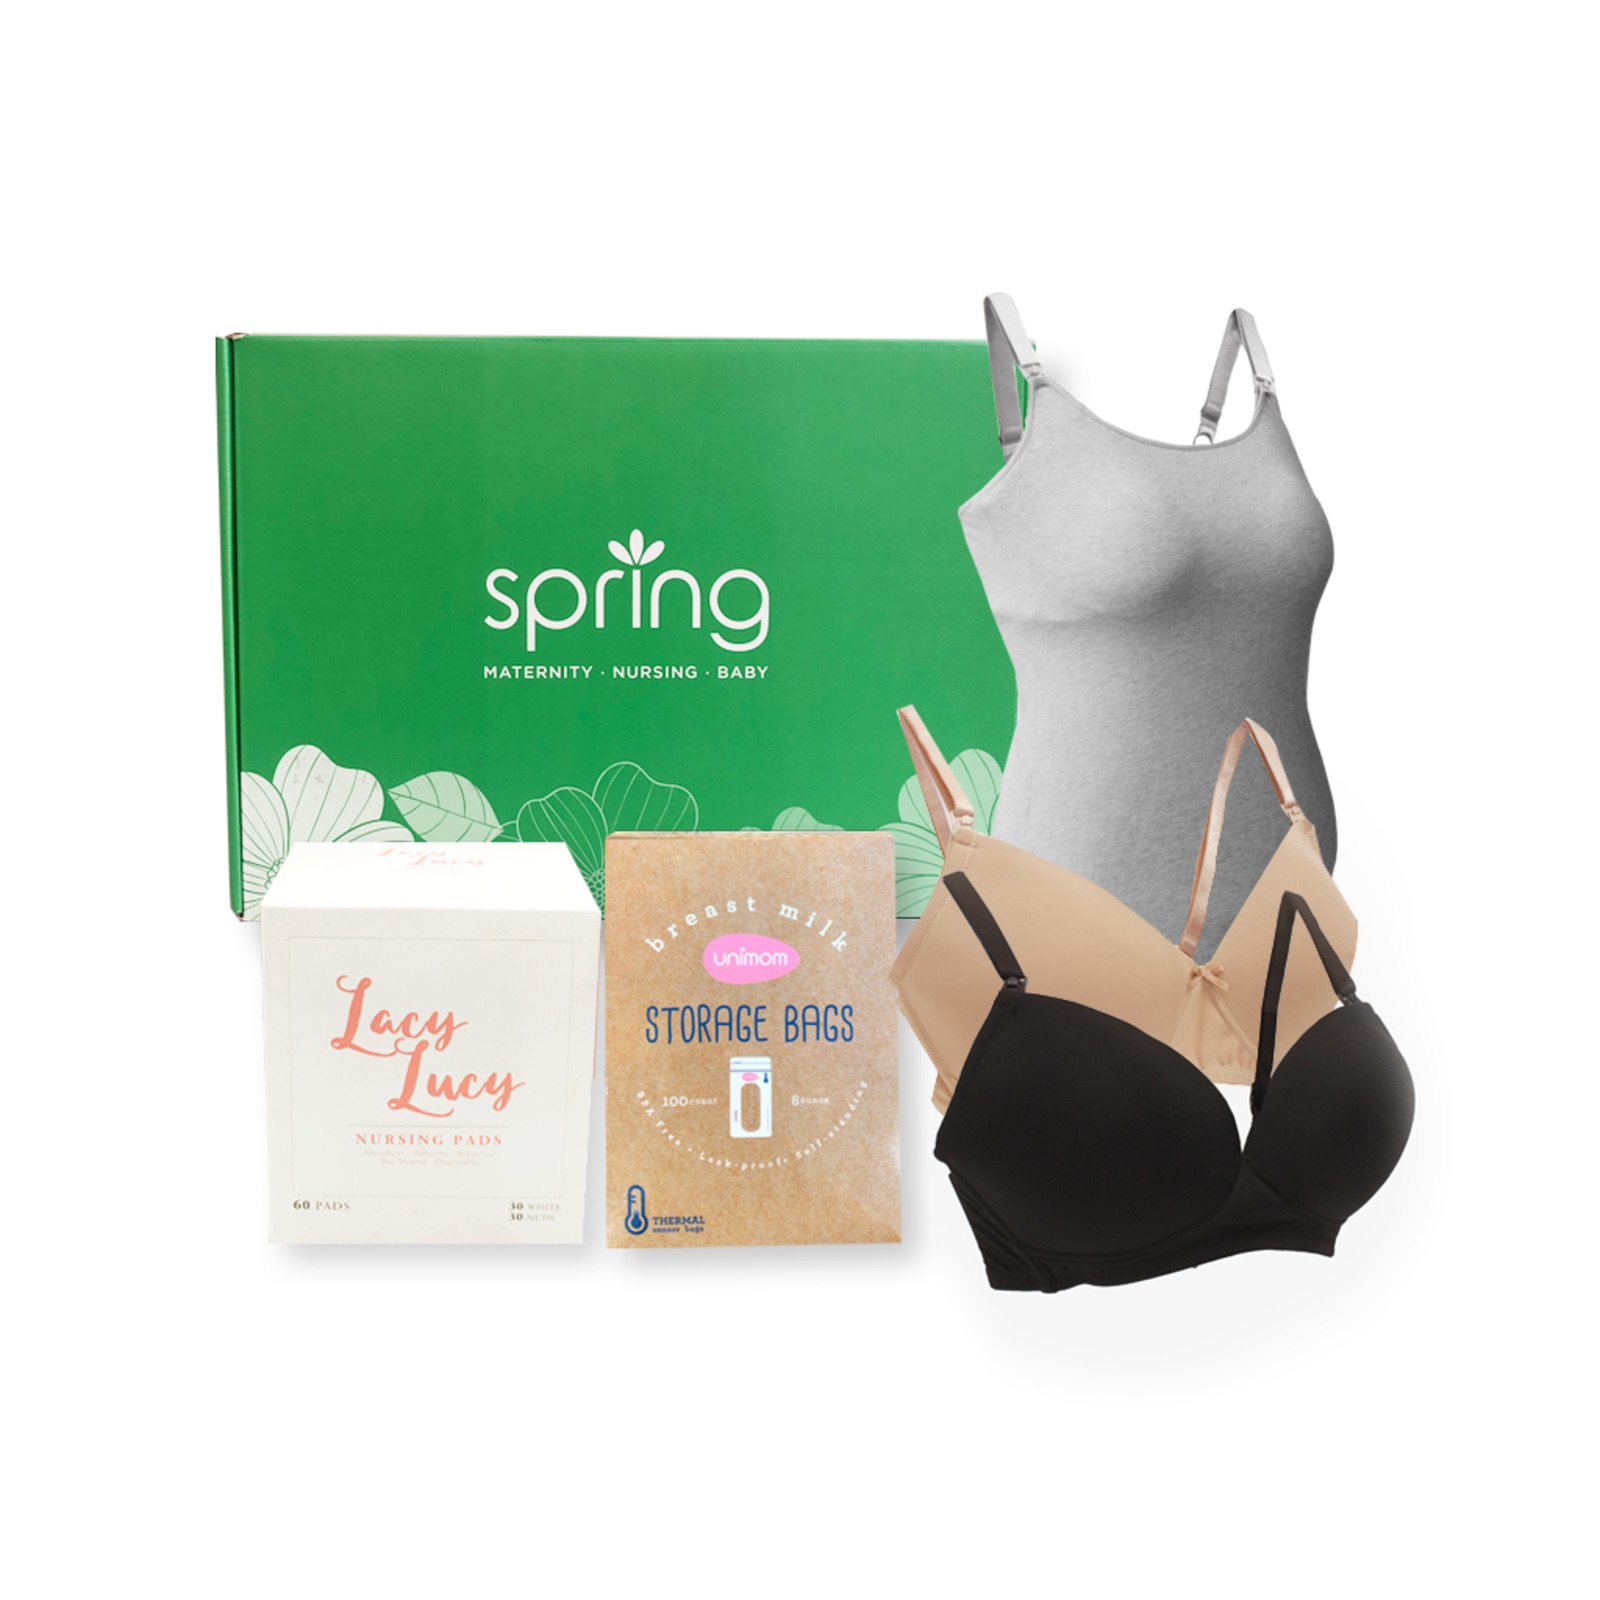 Spring Maternity Nursing Care Pack - Size M